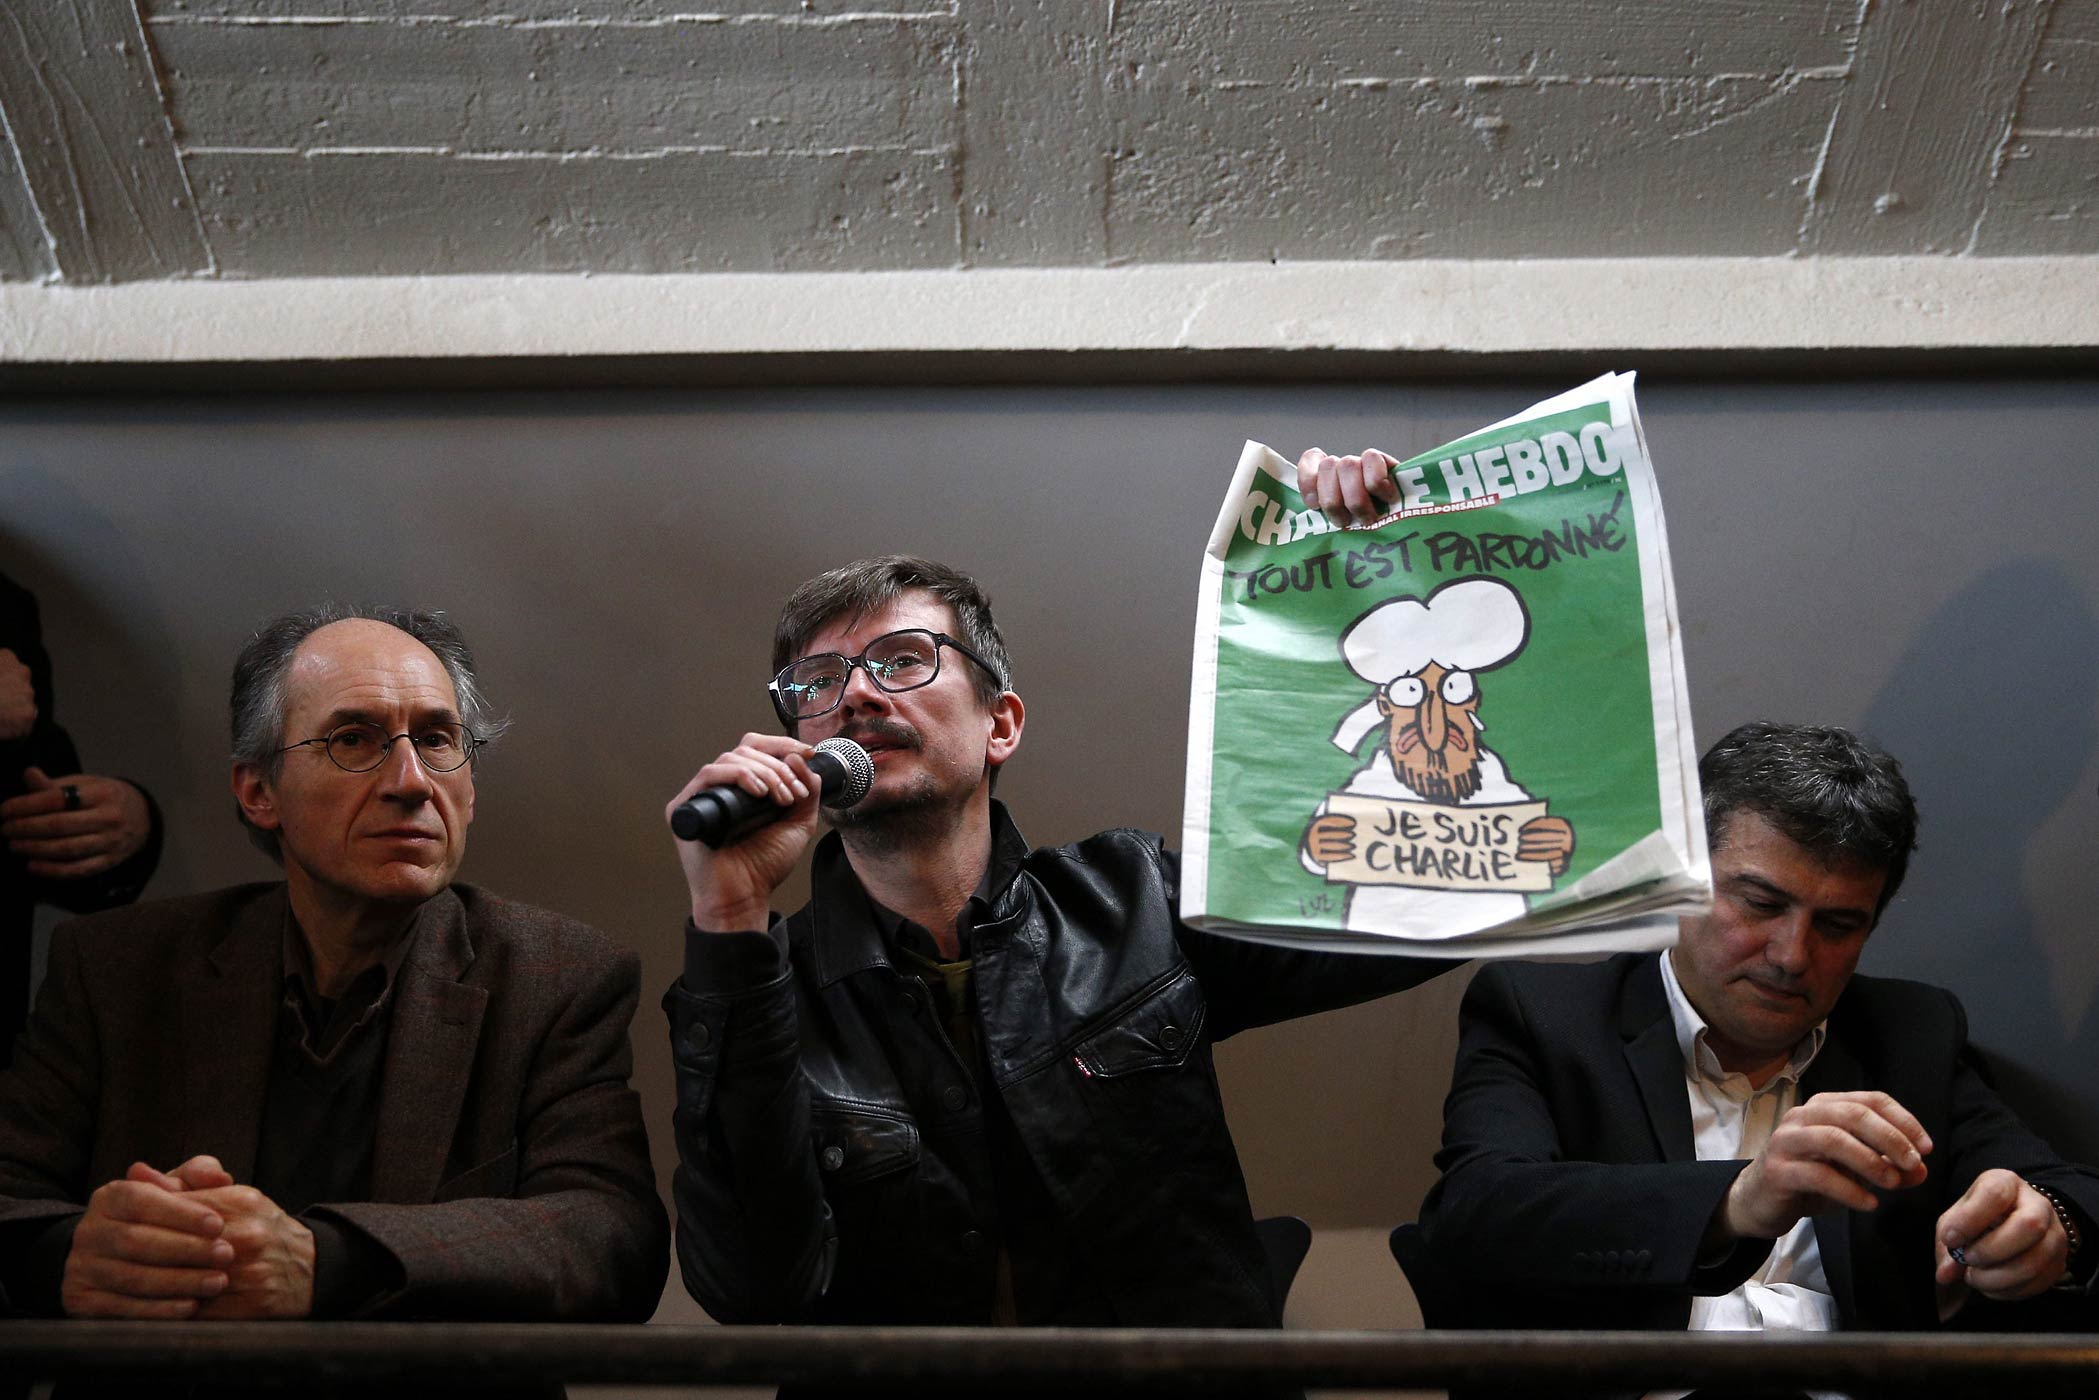 The new editor-in-chief of French satirical magazine Charlie Hebdo, Gerard Biard, caricaturist Luz, Journalist Patrick Pelloux and editor-in-chief of French newspaper Liberation, Laurent Joffrin, hold a press conference about the next Charlie Hebdo edition, at the Liberation newspaper headquarters, in Paris, Jan. 13, 2015.